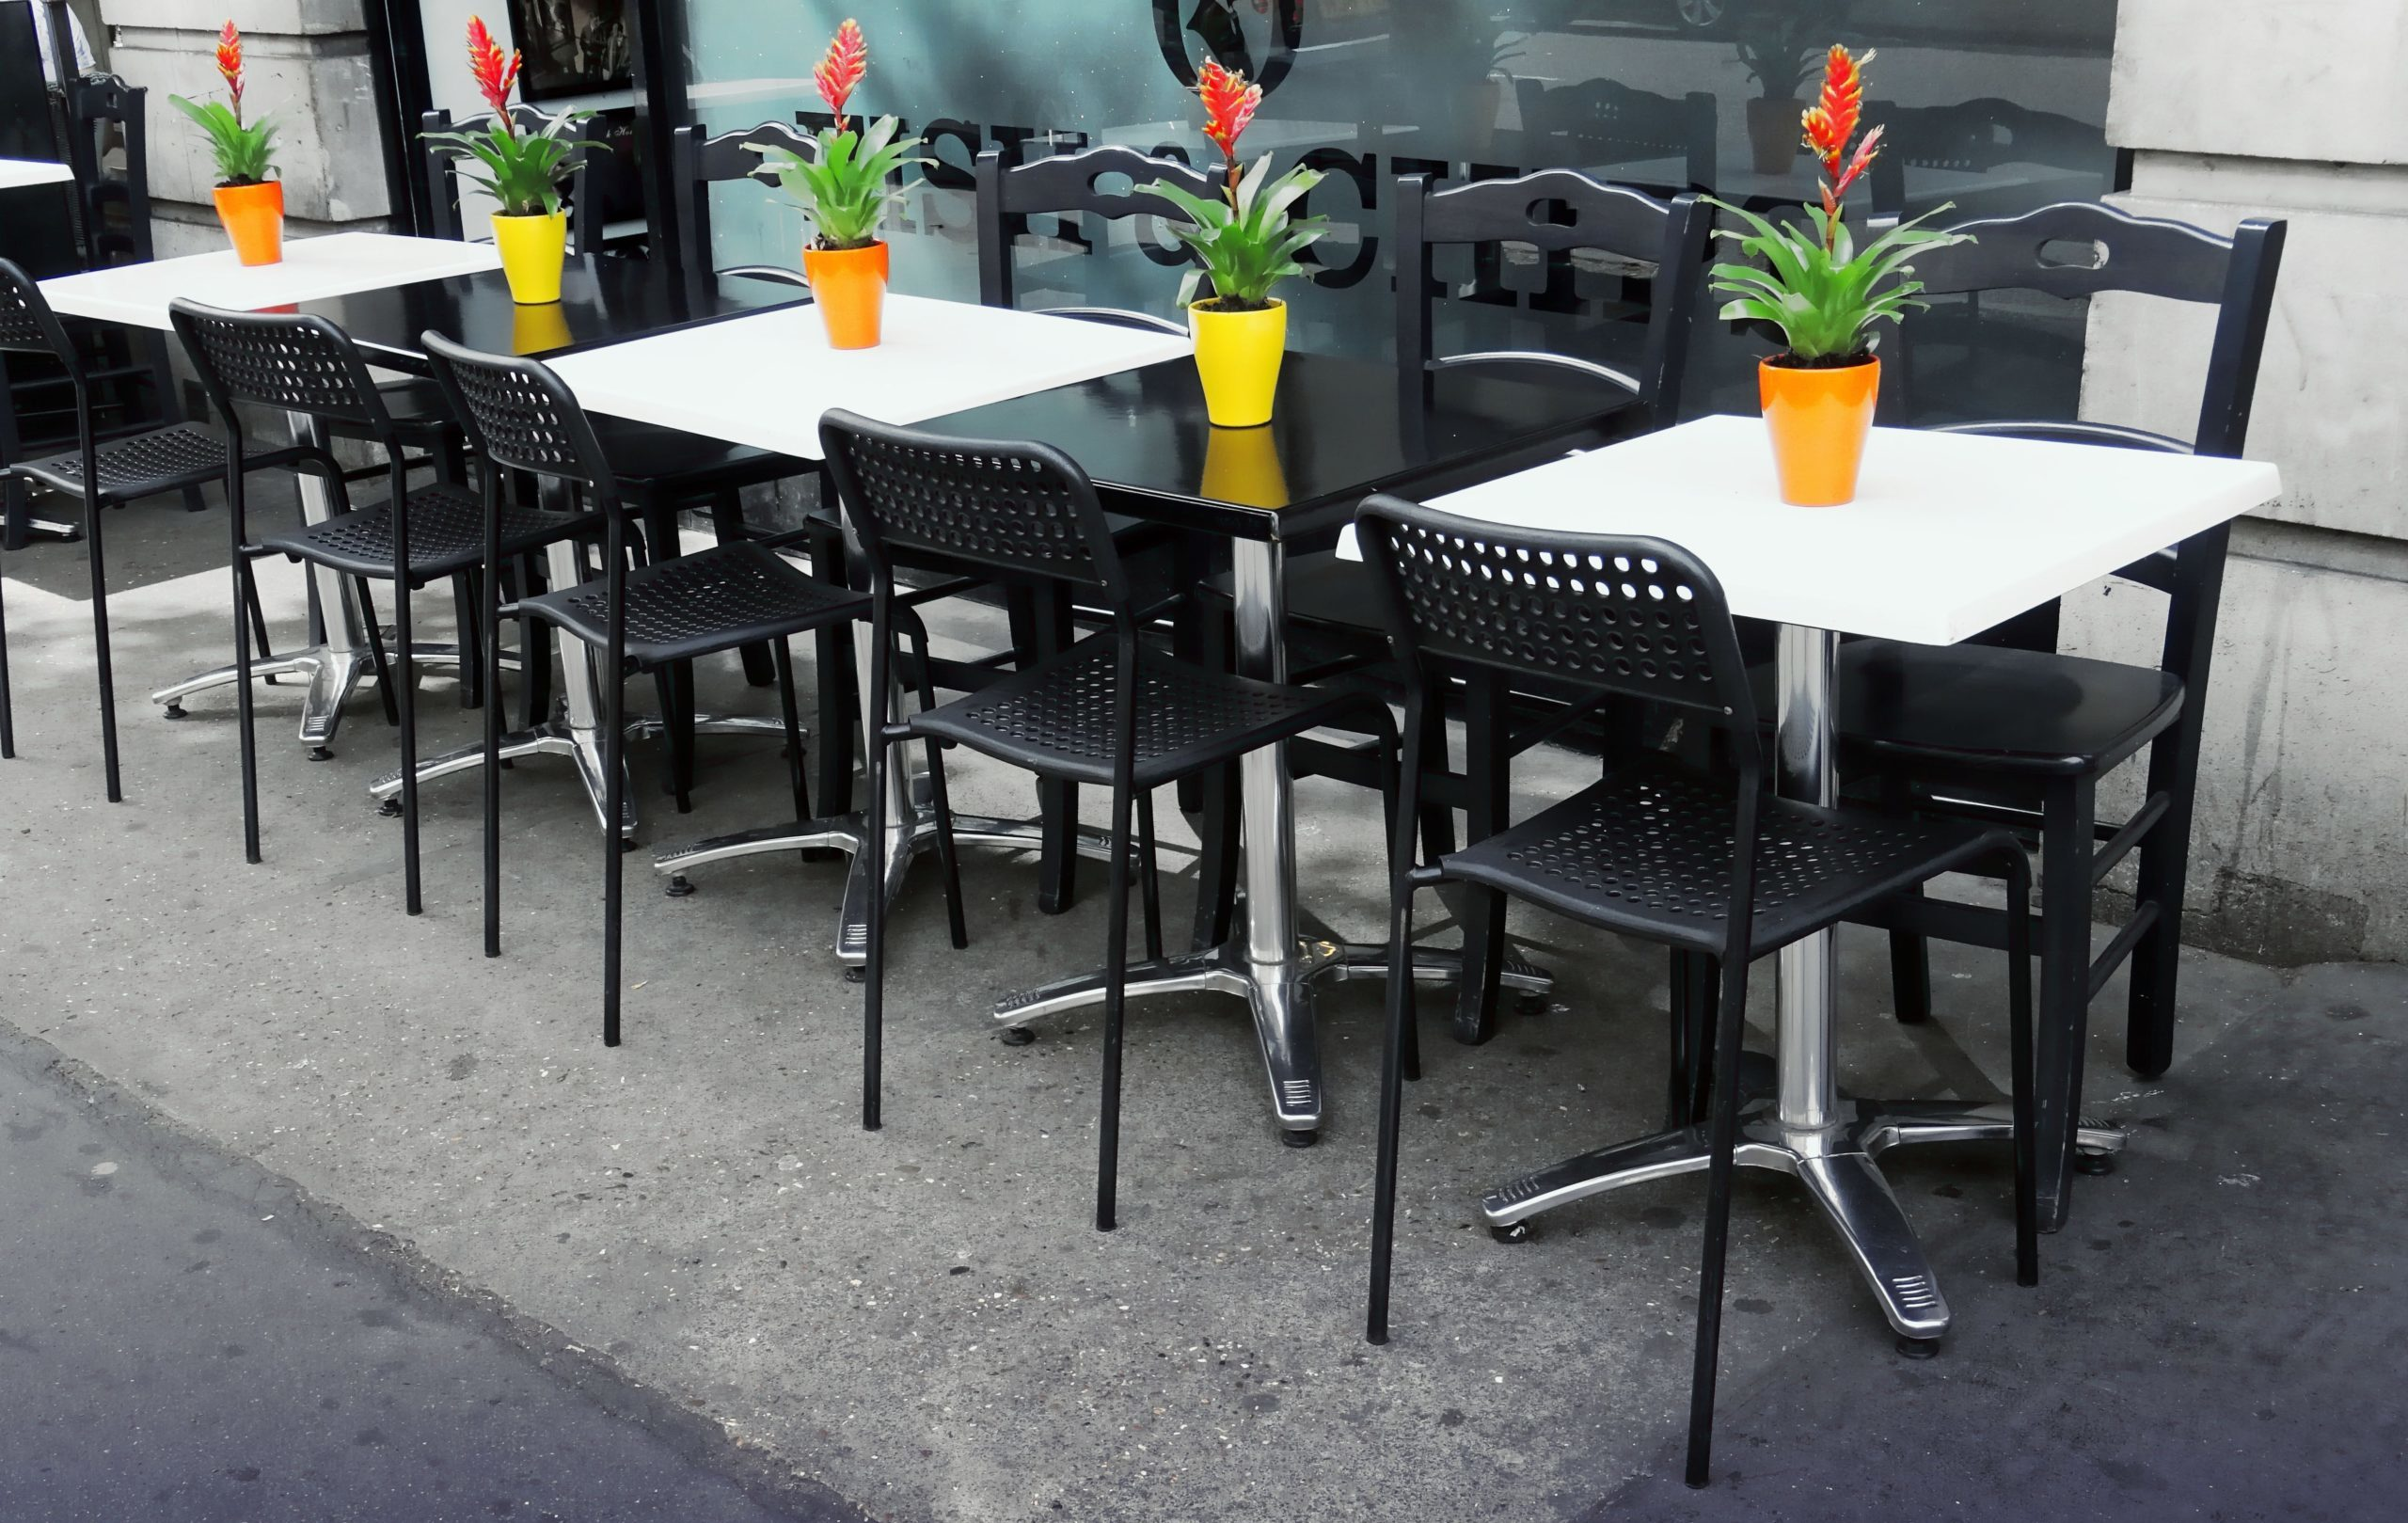 Outdoor Patio with Tables